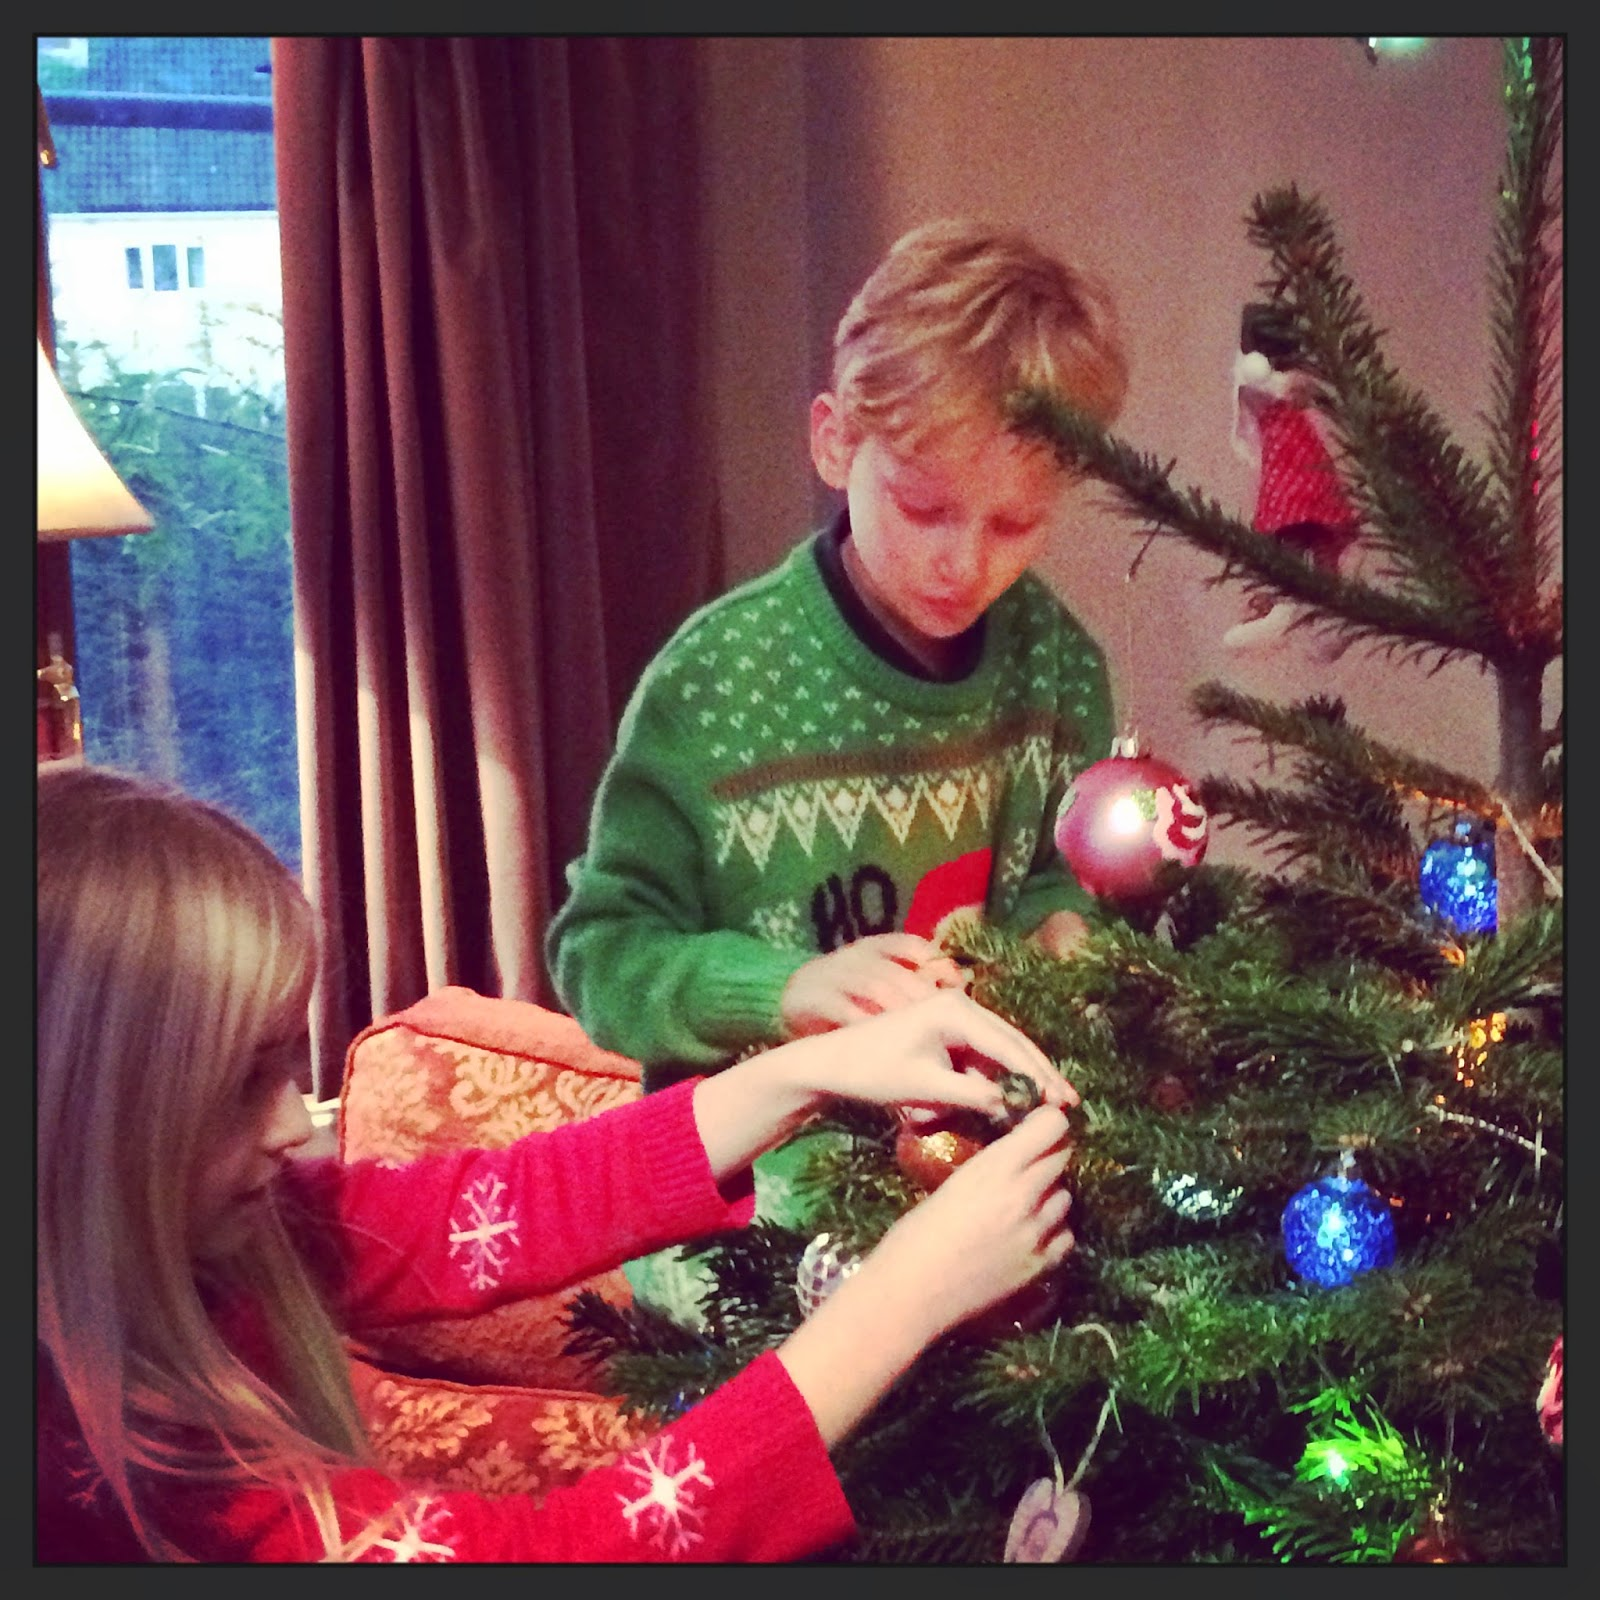 children wearing Christmas jumpers decorating tree